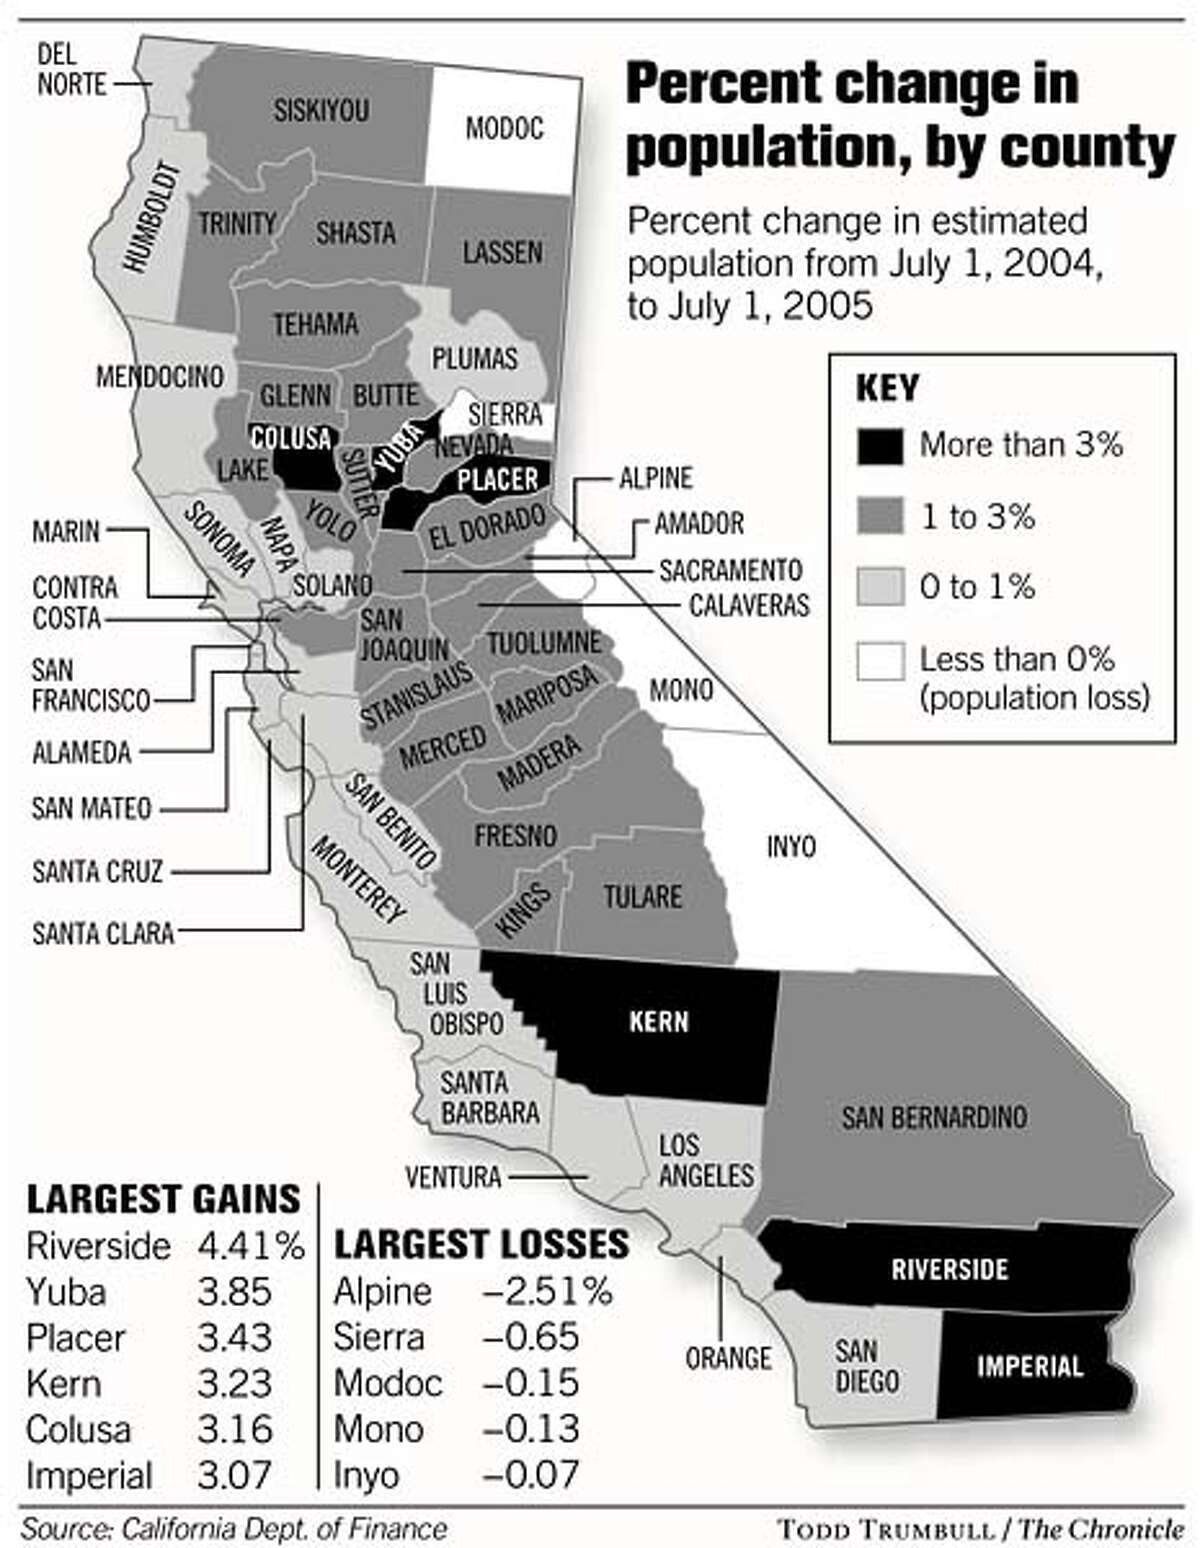 Percent change in population by county. Chronicle graphic by Todd Trumbull